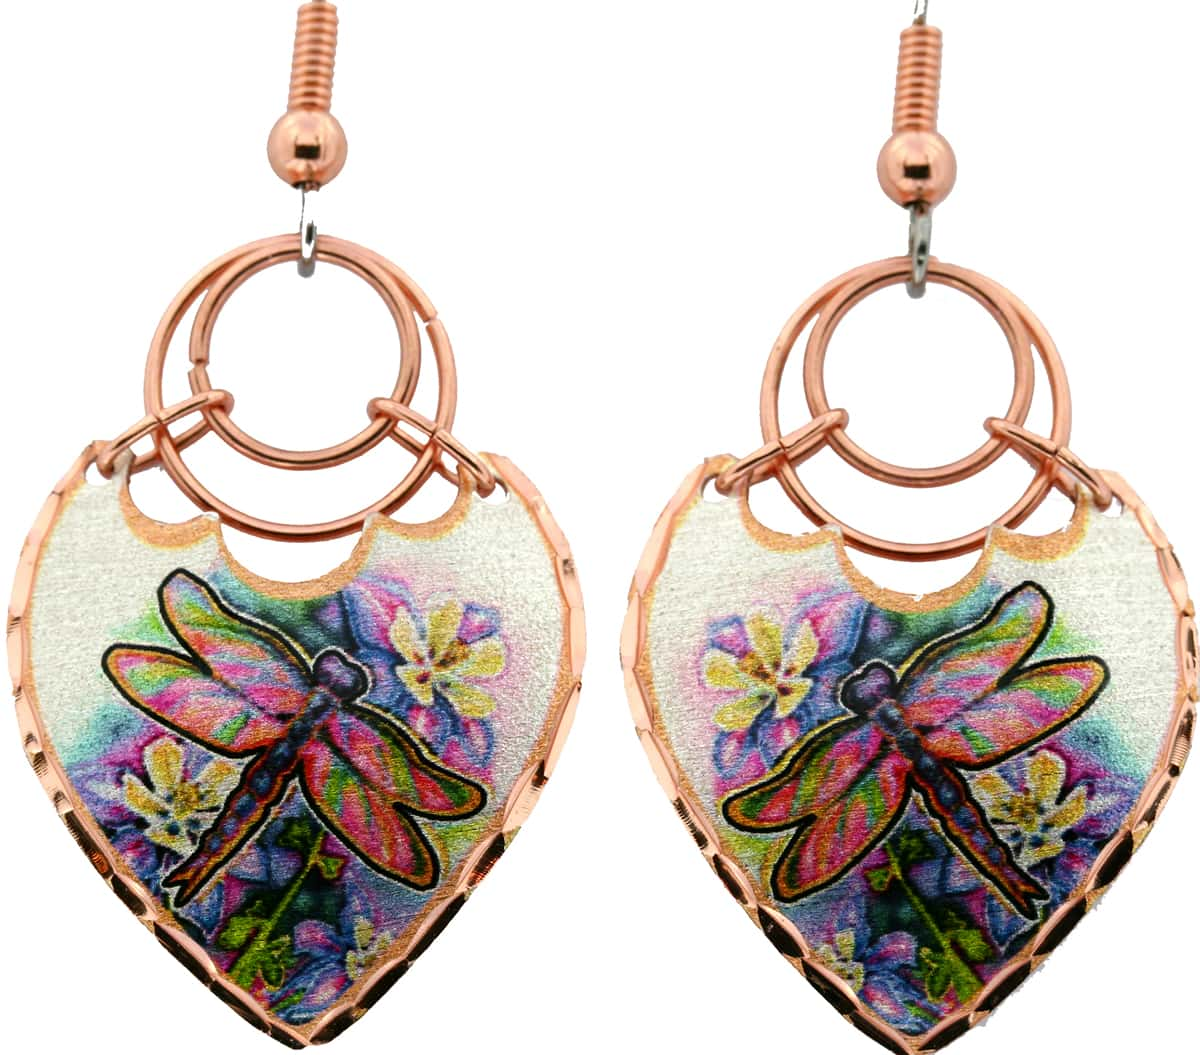 Dragonfly Earrings Handmade from Copper and Copper Wires